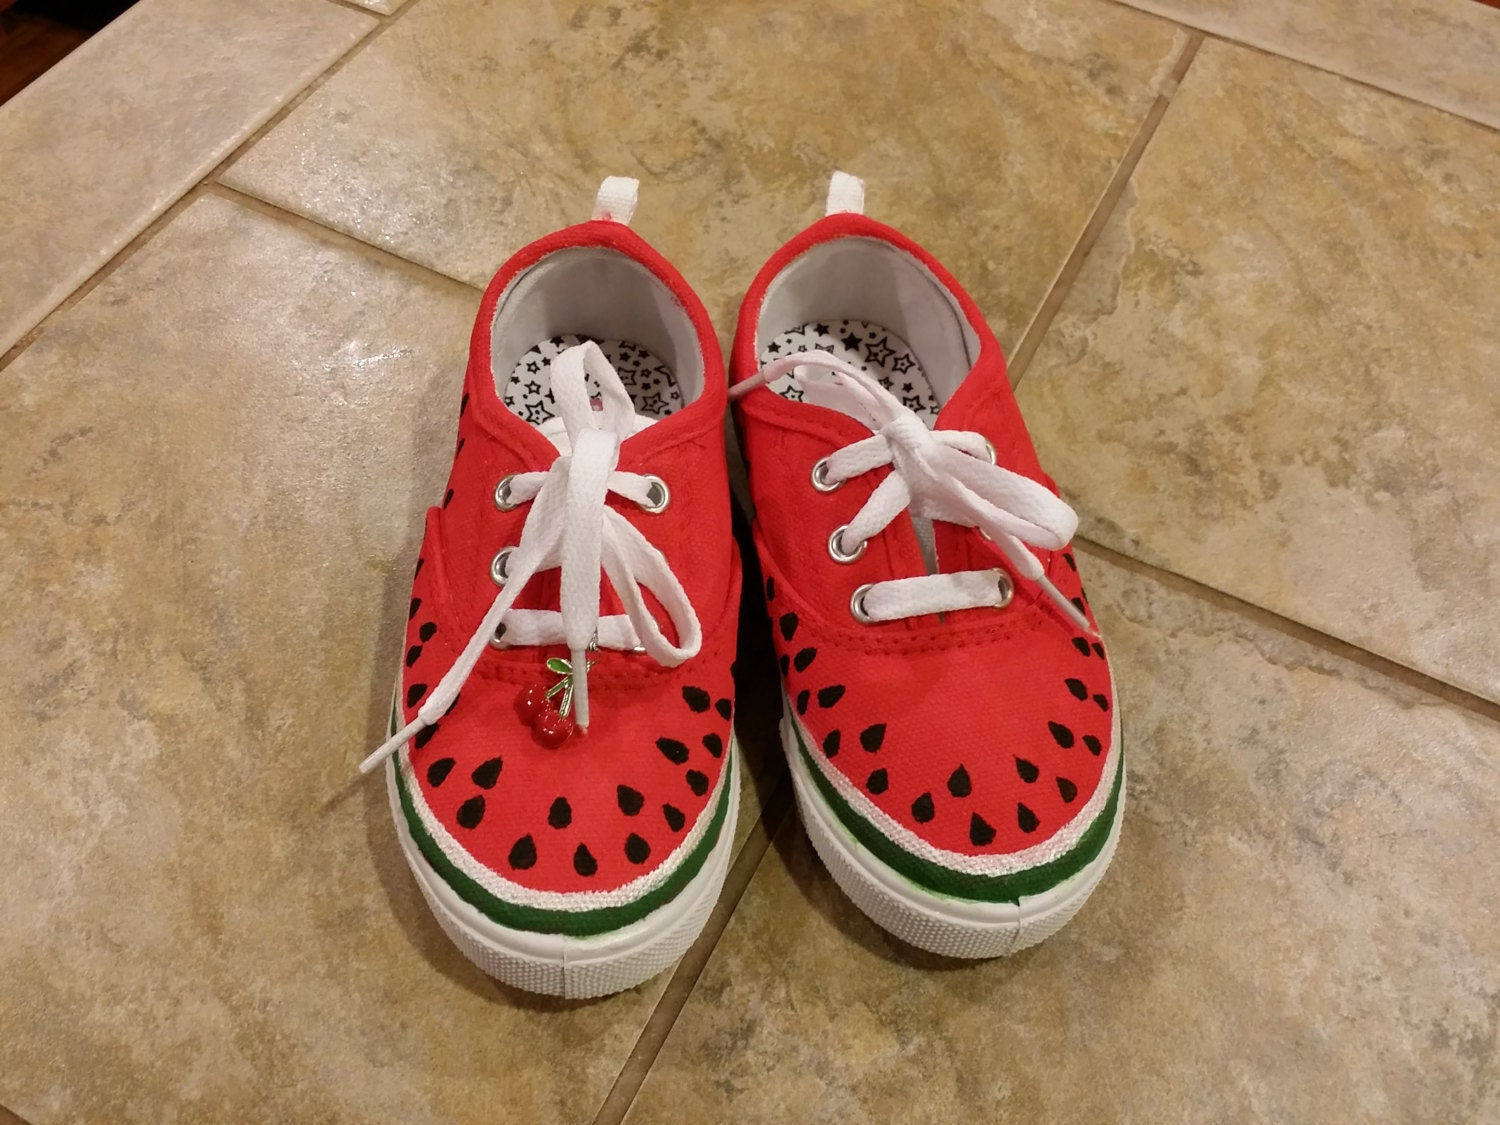 custom made canvas shoes watermelon themed by punkinfeets